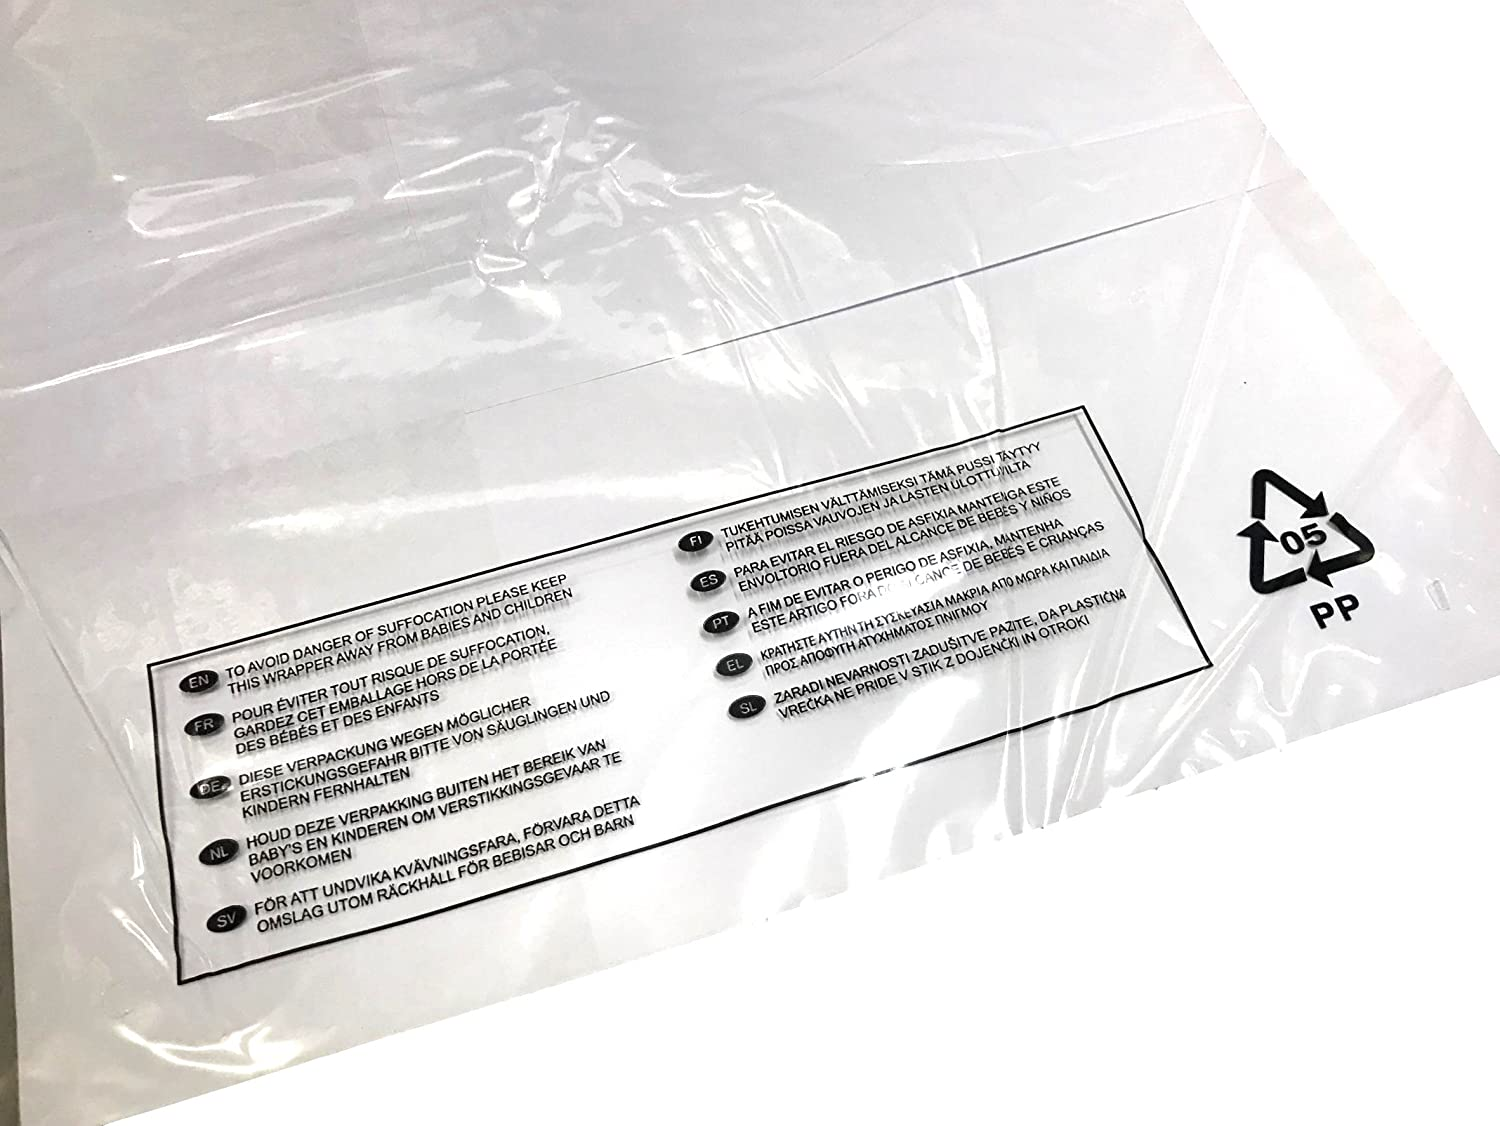 100x FBA Approved 1.8mil 45 Micron Poly Bags Self Seal Crystal Clear Extra Large Quality Made in UK Poly Bags With Suffocation Warning in 10 Languages for  Stock Poly Packaging Bagging In Various /& Mixed Sizes 325 x 440mm